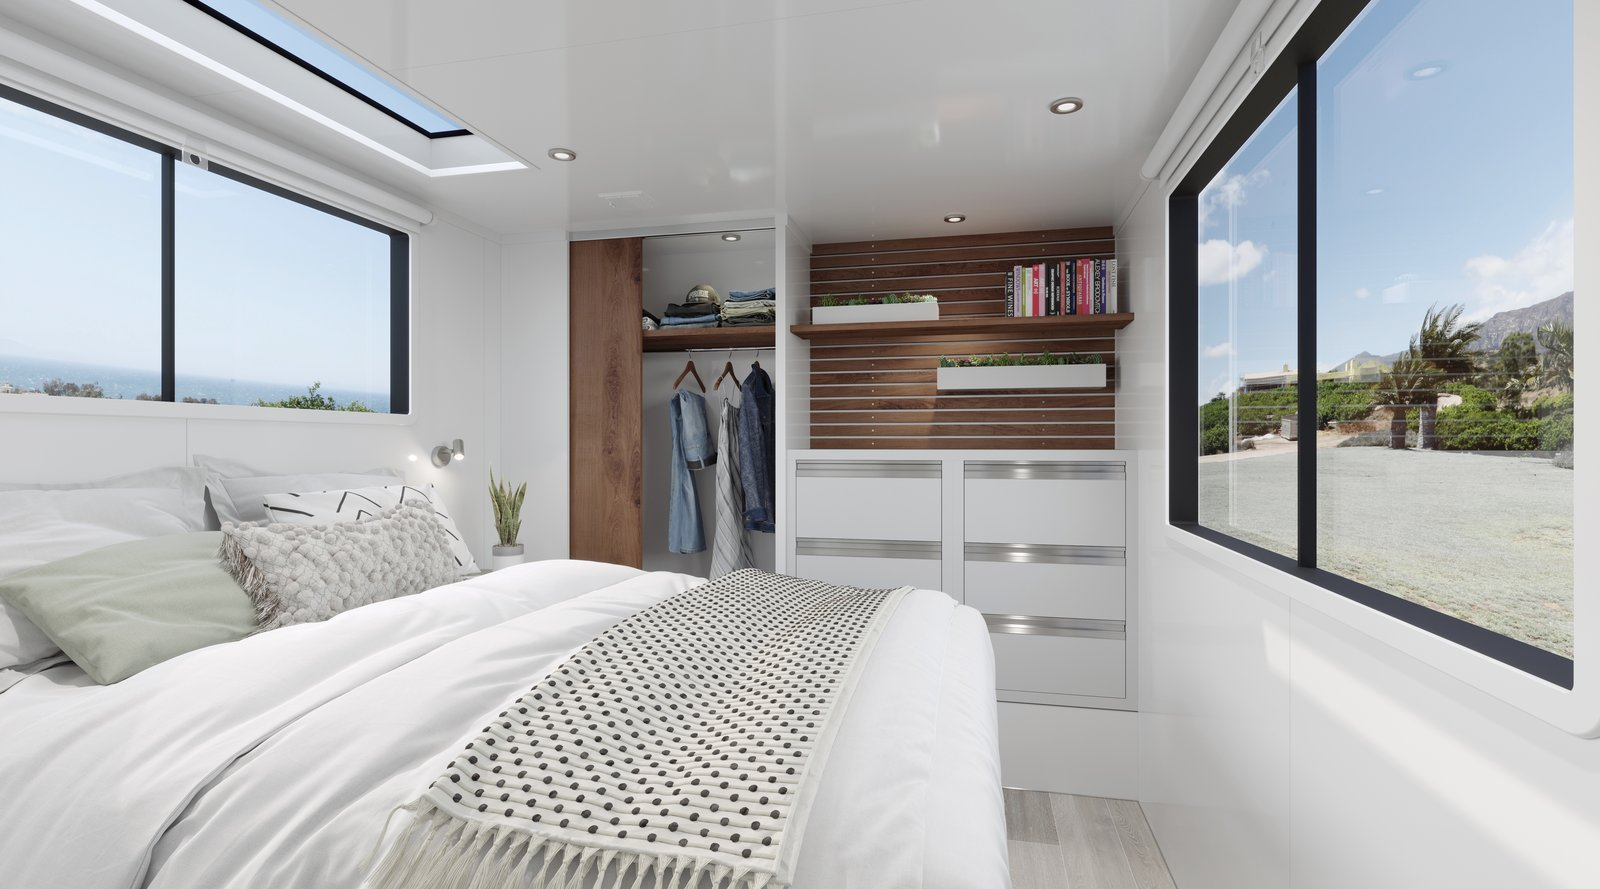 Living Vehicle 2020 Trailer bedroom